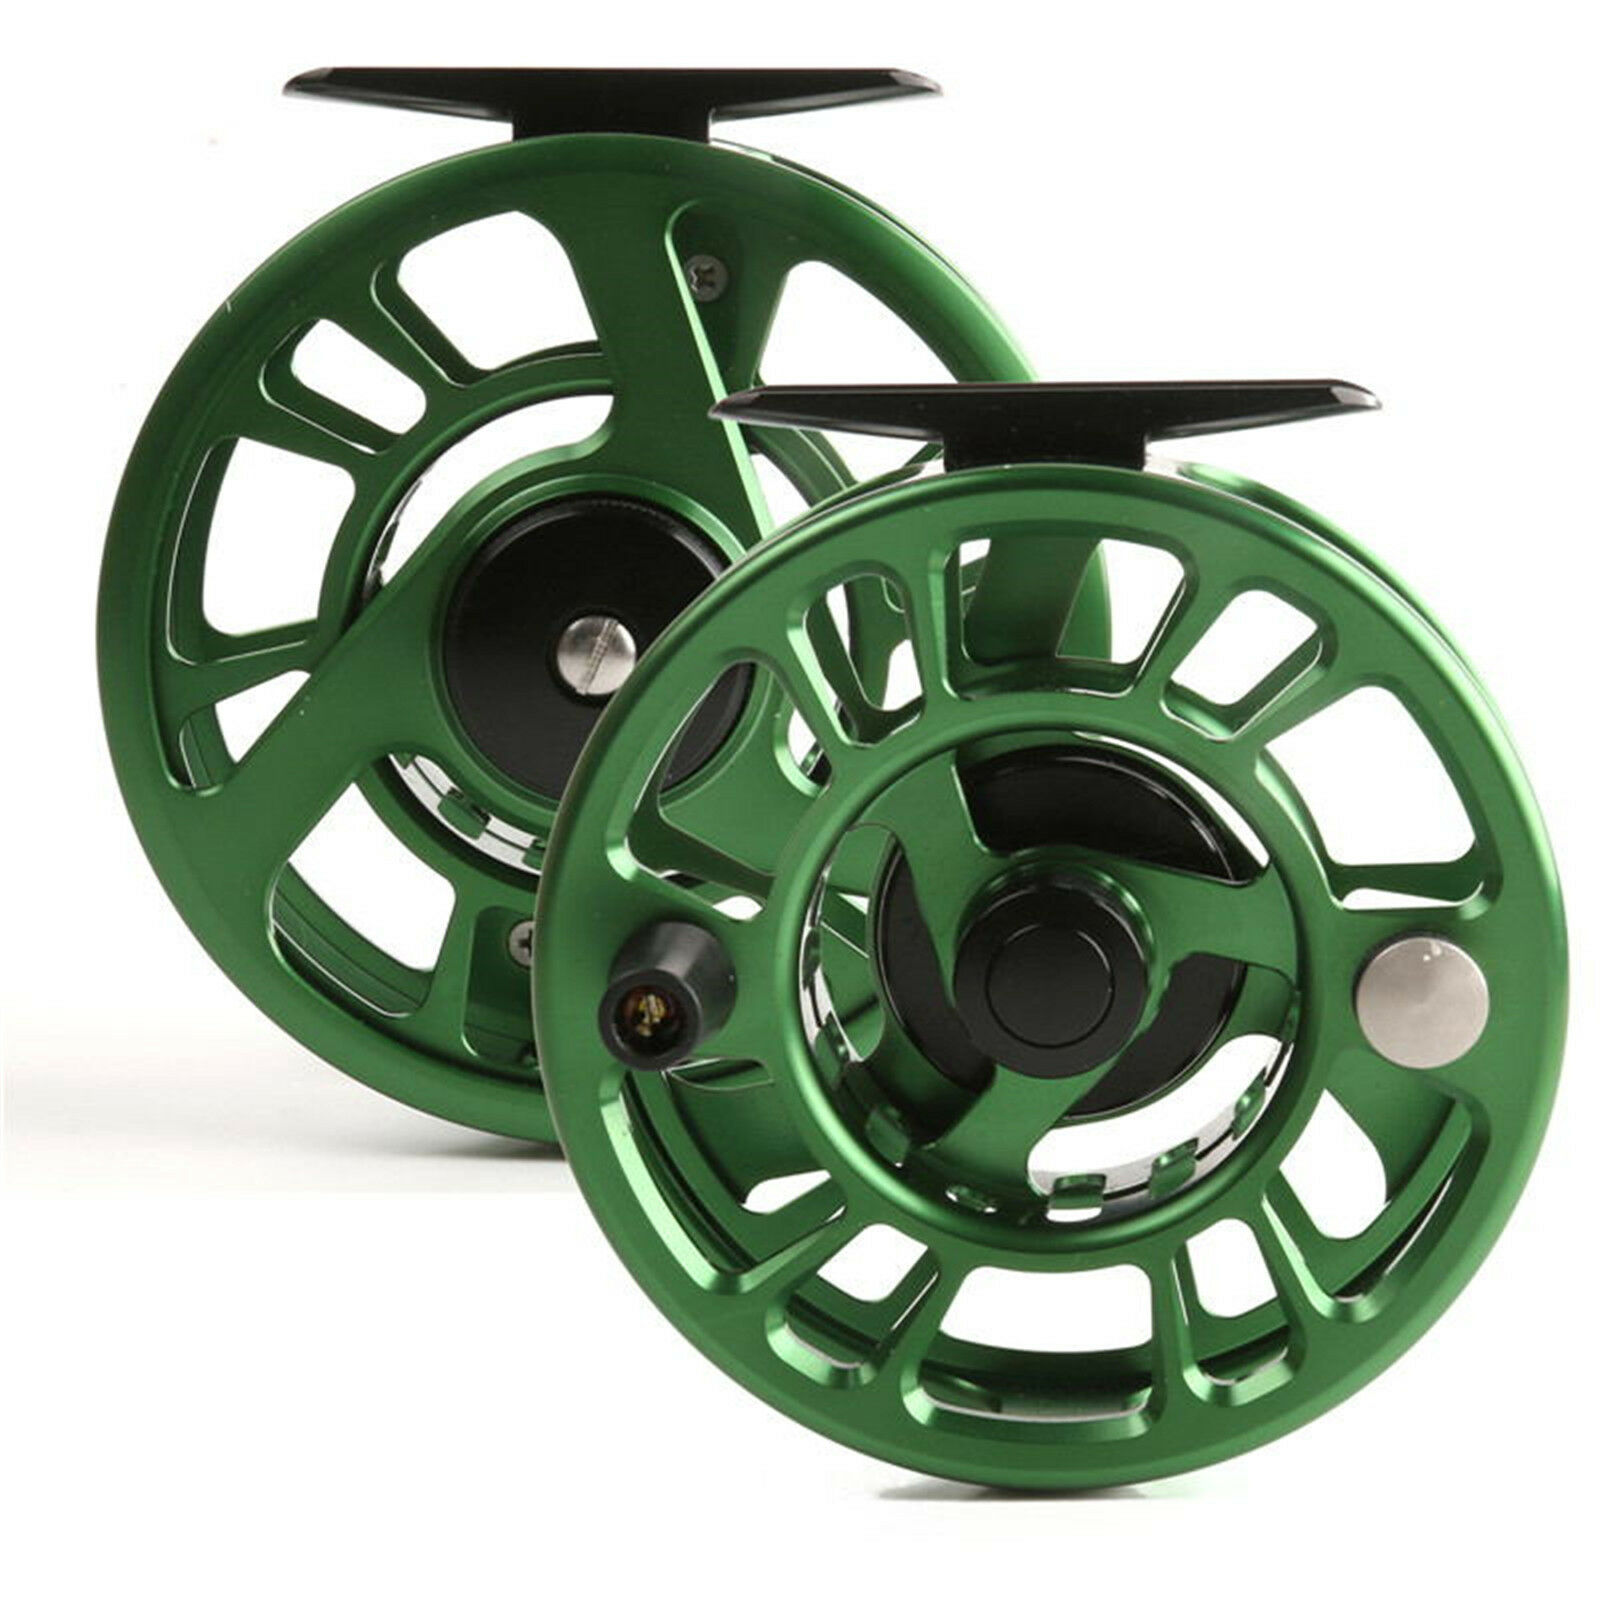 3 4 5 6 7 8 Weight Trout Fly Fishing Reel Stable Drag Feeling Green & Reel Bag